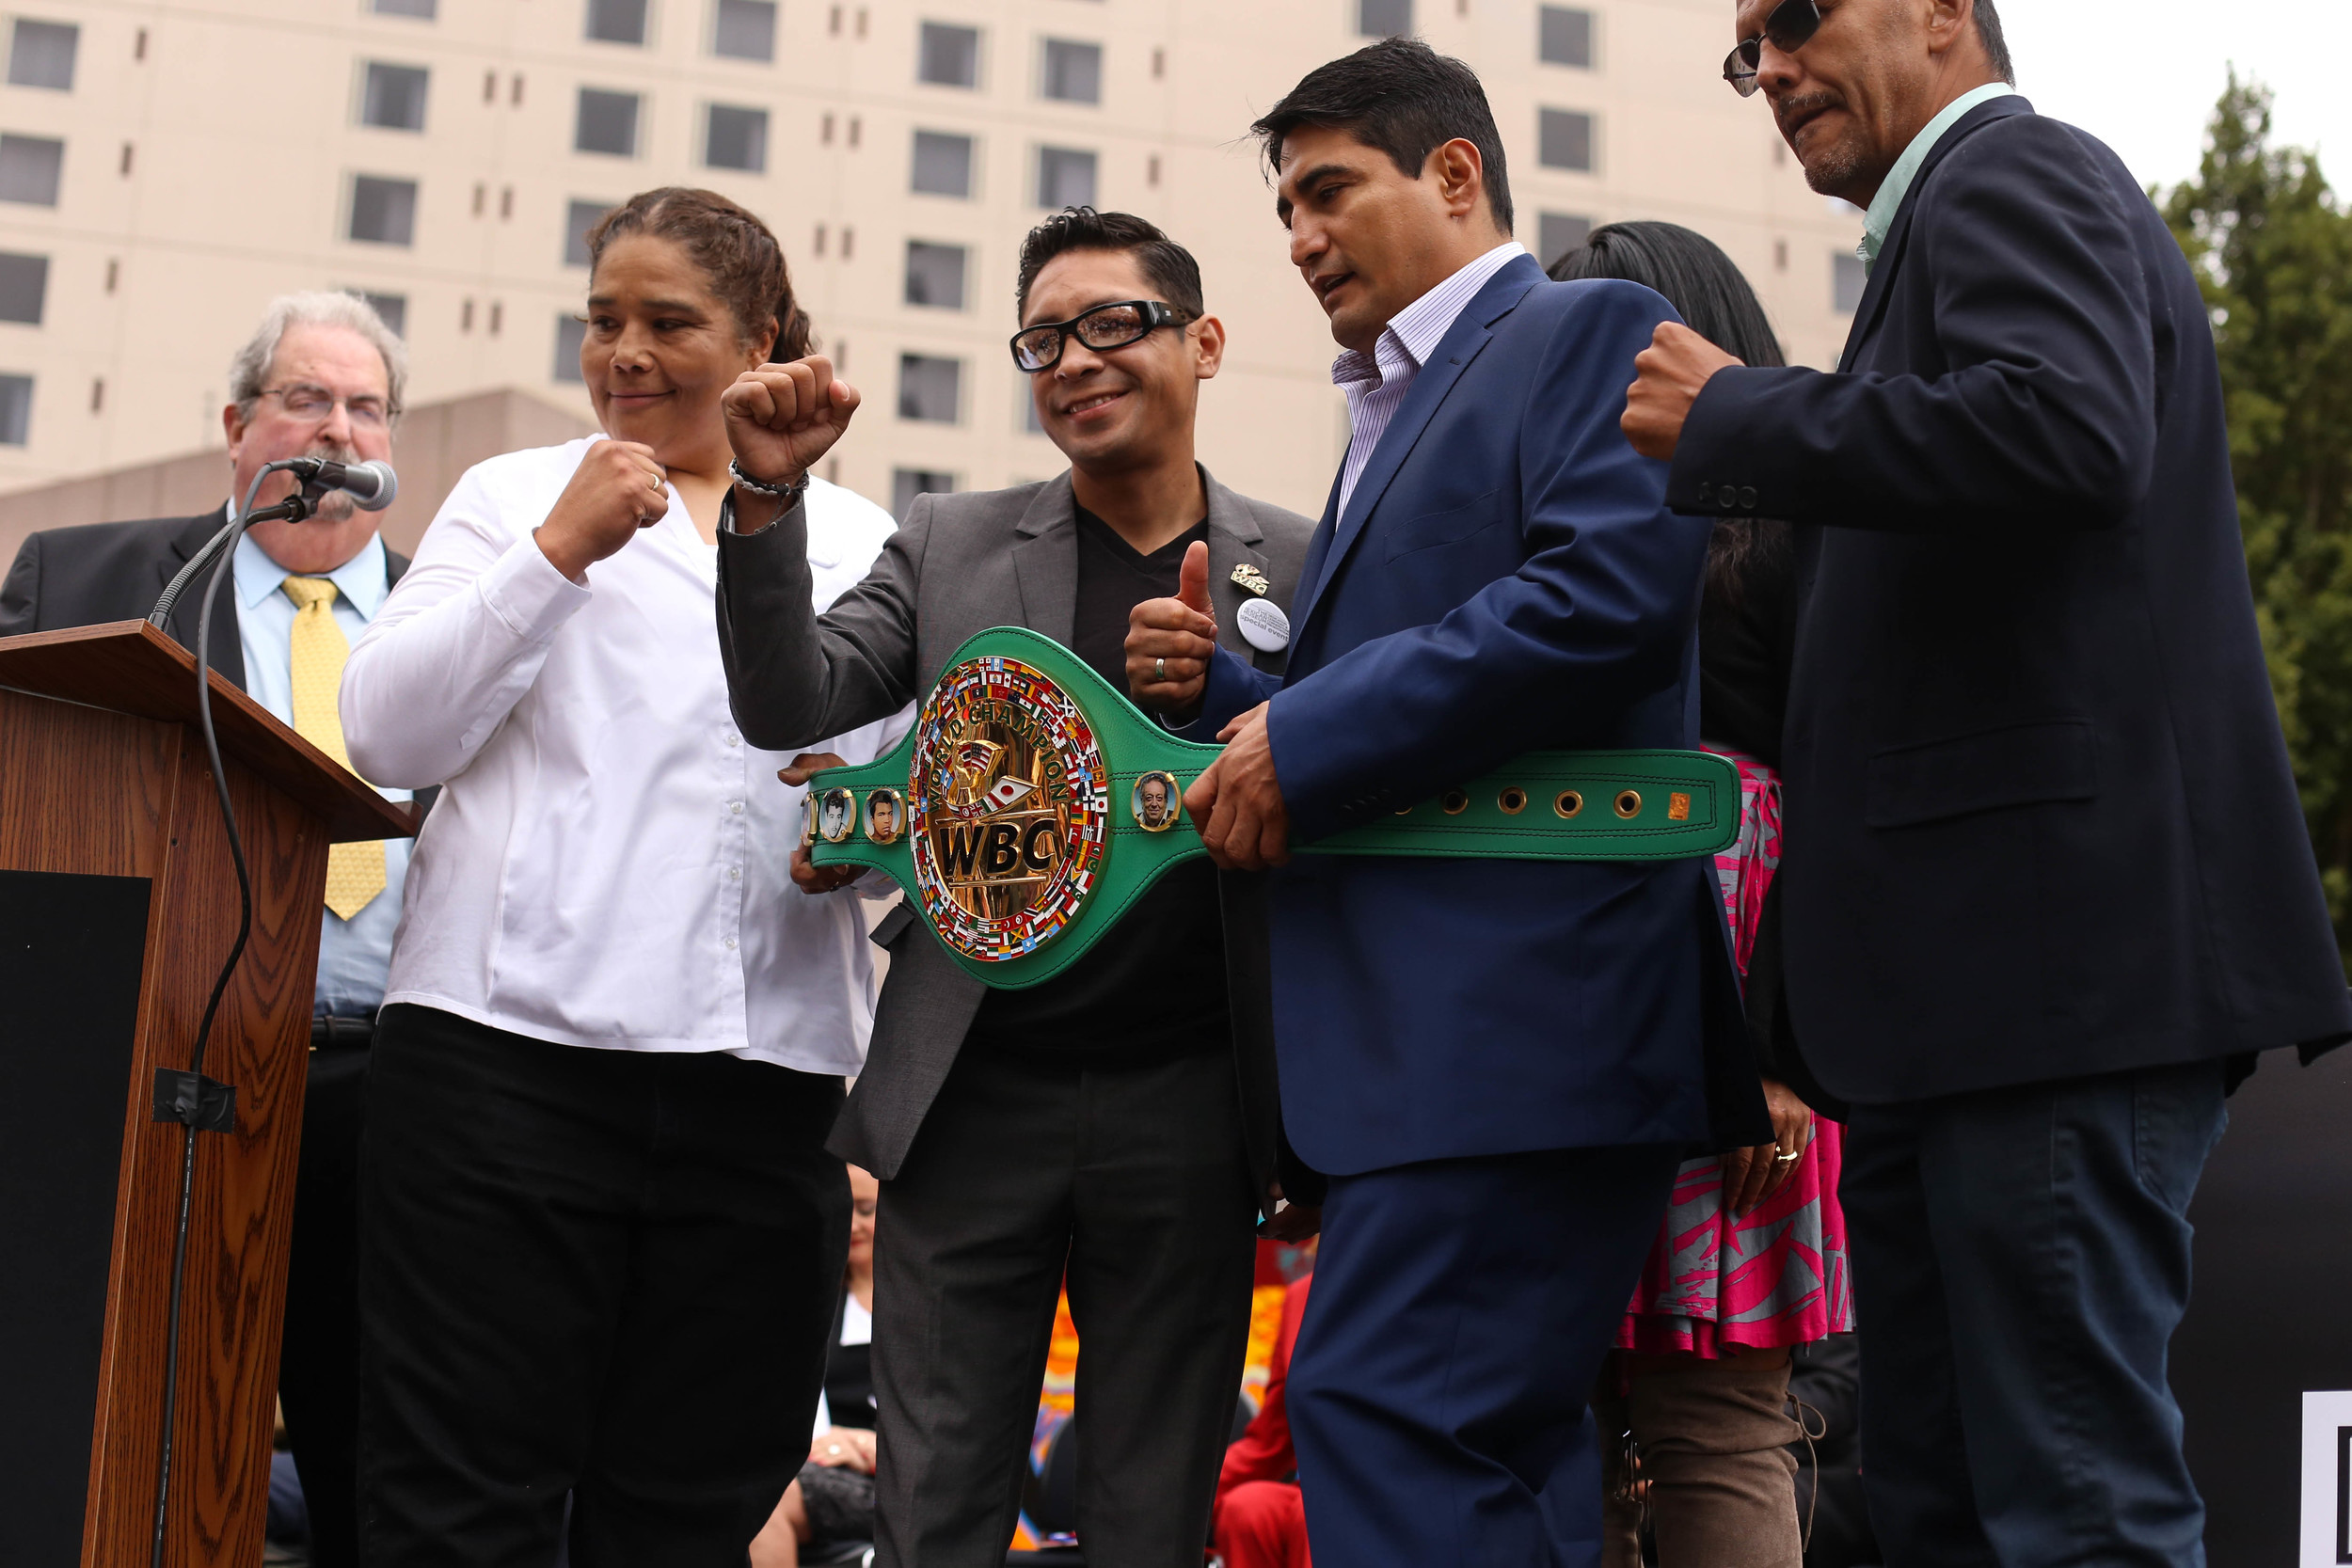 Boxers Martha Salazar, Israel Vazquez,Érik Morales, and Gabriel Ruelas gave away over a 100 pairs of autographed kid's boxing gloves for the dedication ceremony for The Mexican Museum in San Francisco, California. Tuesday, July 19, 2016. Jessica Webb